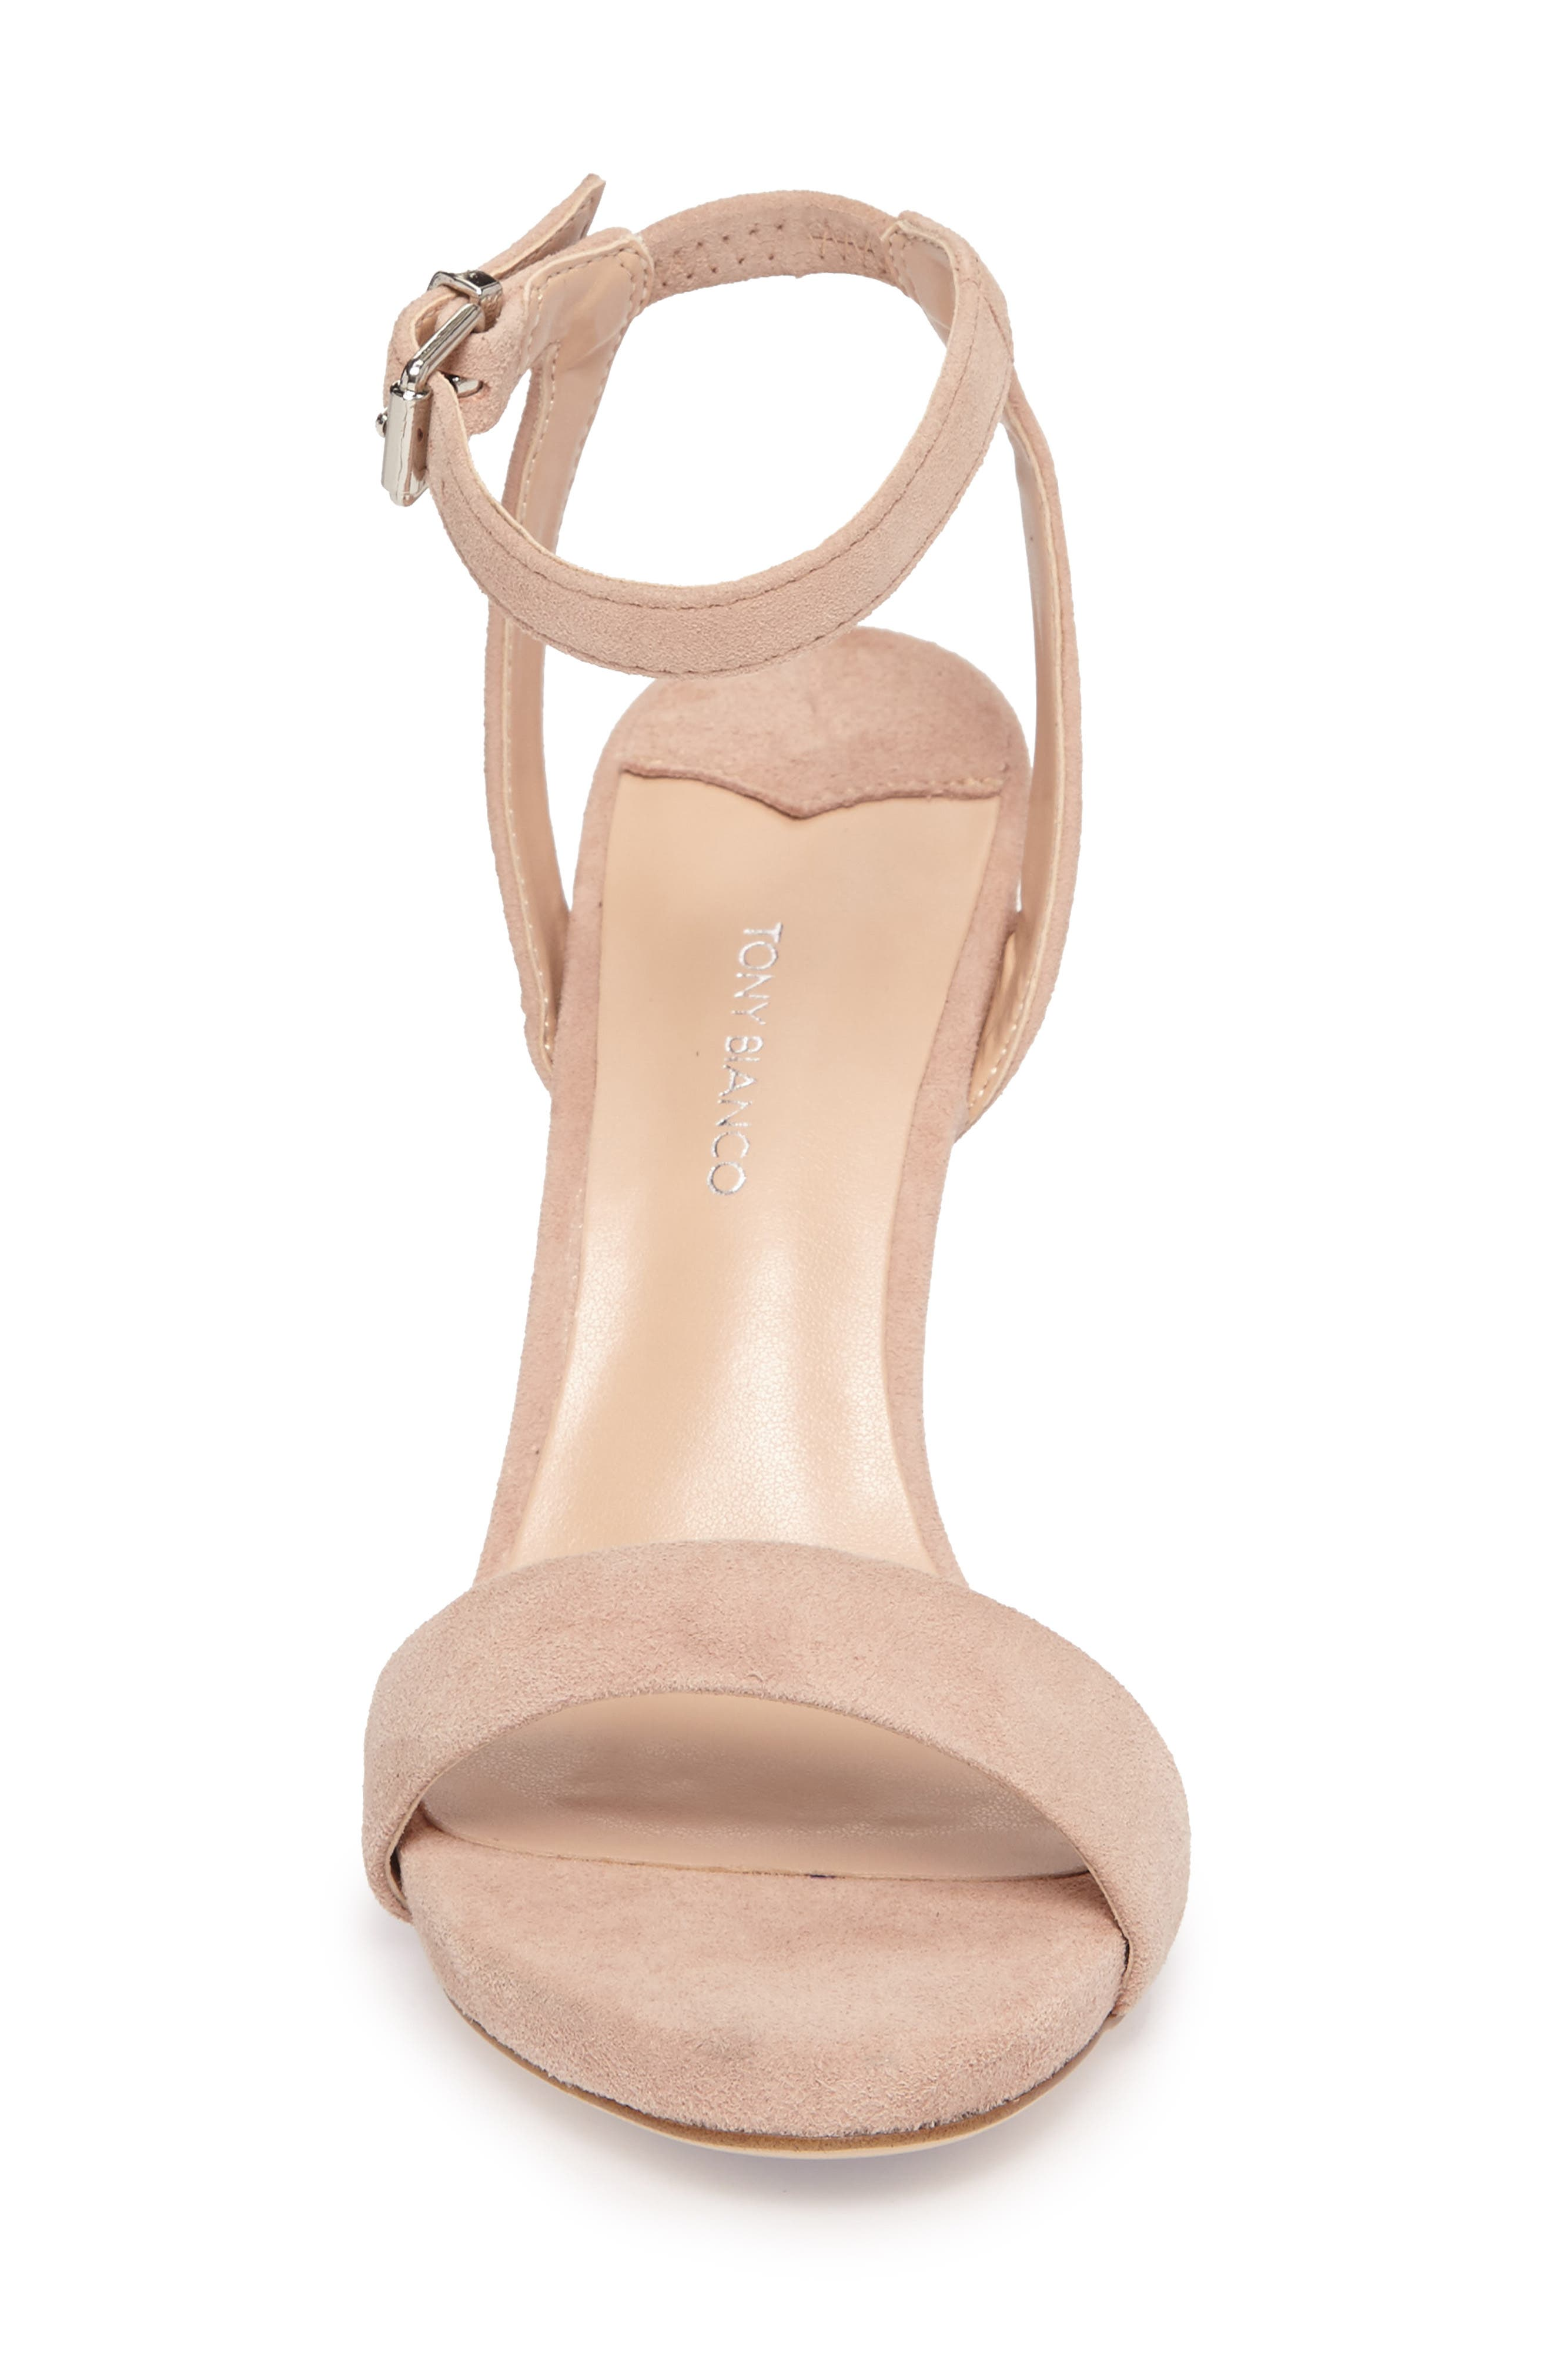 Char Ankle Cuff Sandal,                             Alternate thumbnail 4, color,                             Blush Suede